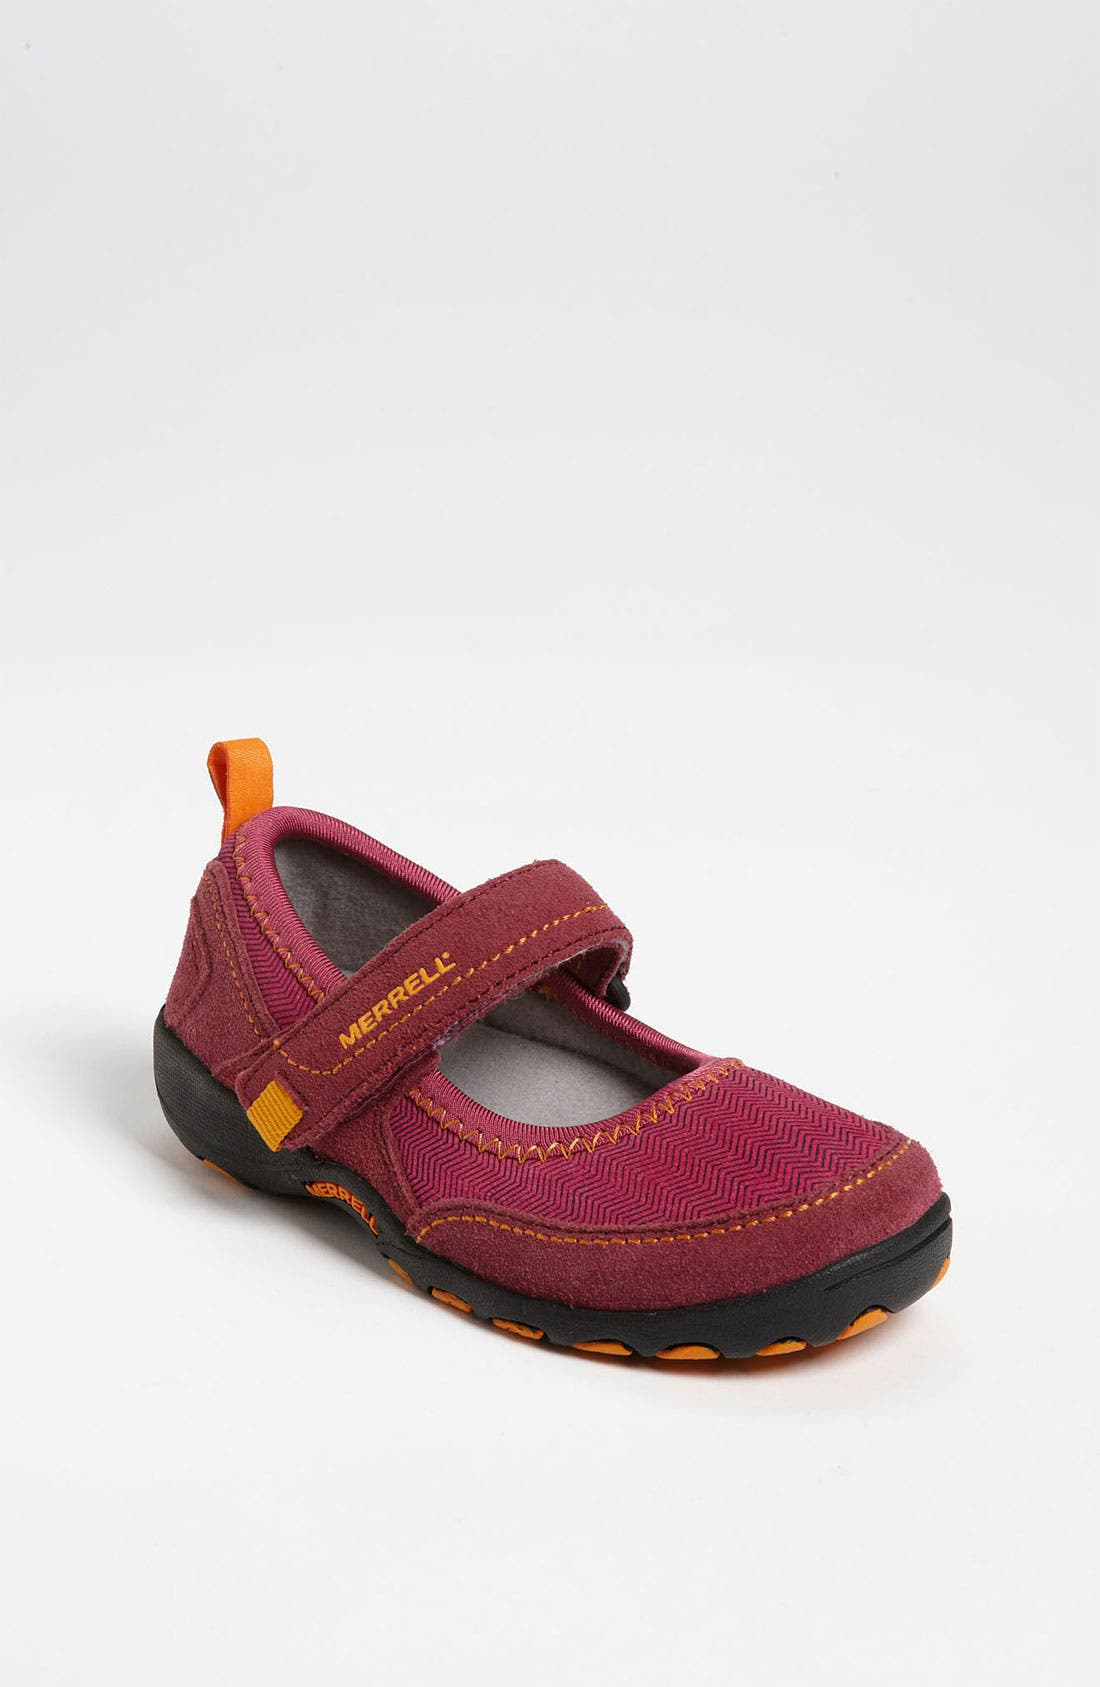 Main Image - Merrell 'Mimosa' Mary Jane Sneaker (Toddler, Little Kid & Big Kid)